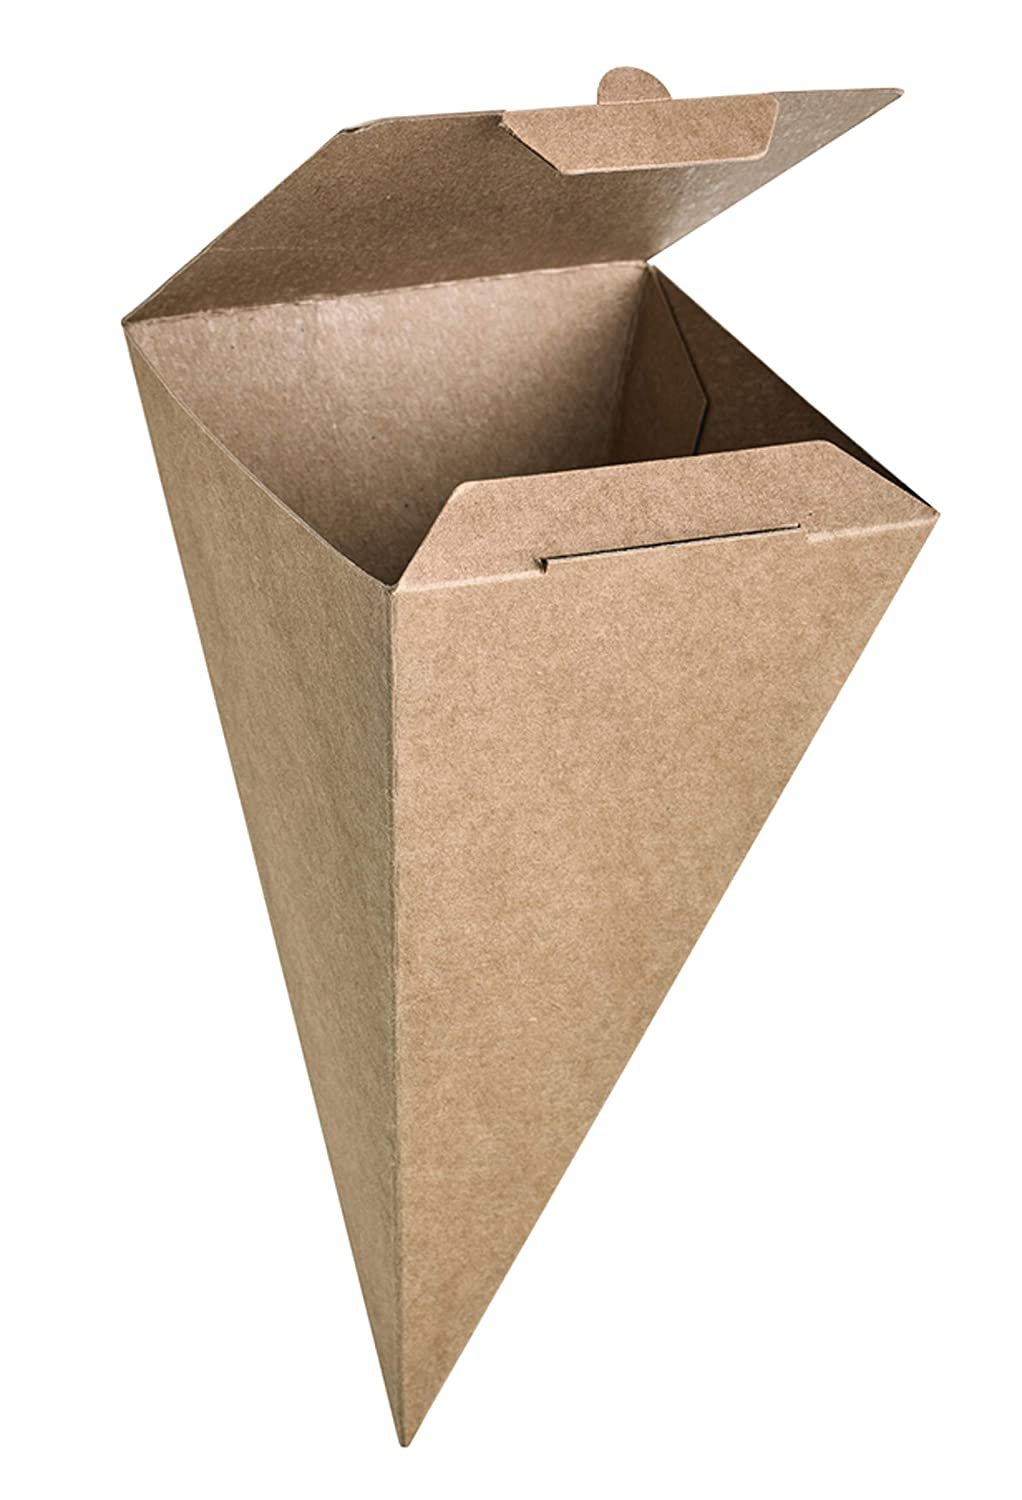 Close-able Kraft Snack Cone- Brown Paper Food Cones French Fry Holder, Pack of 25